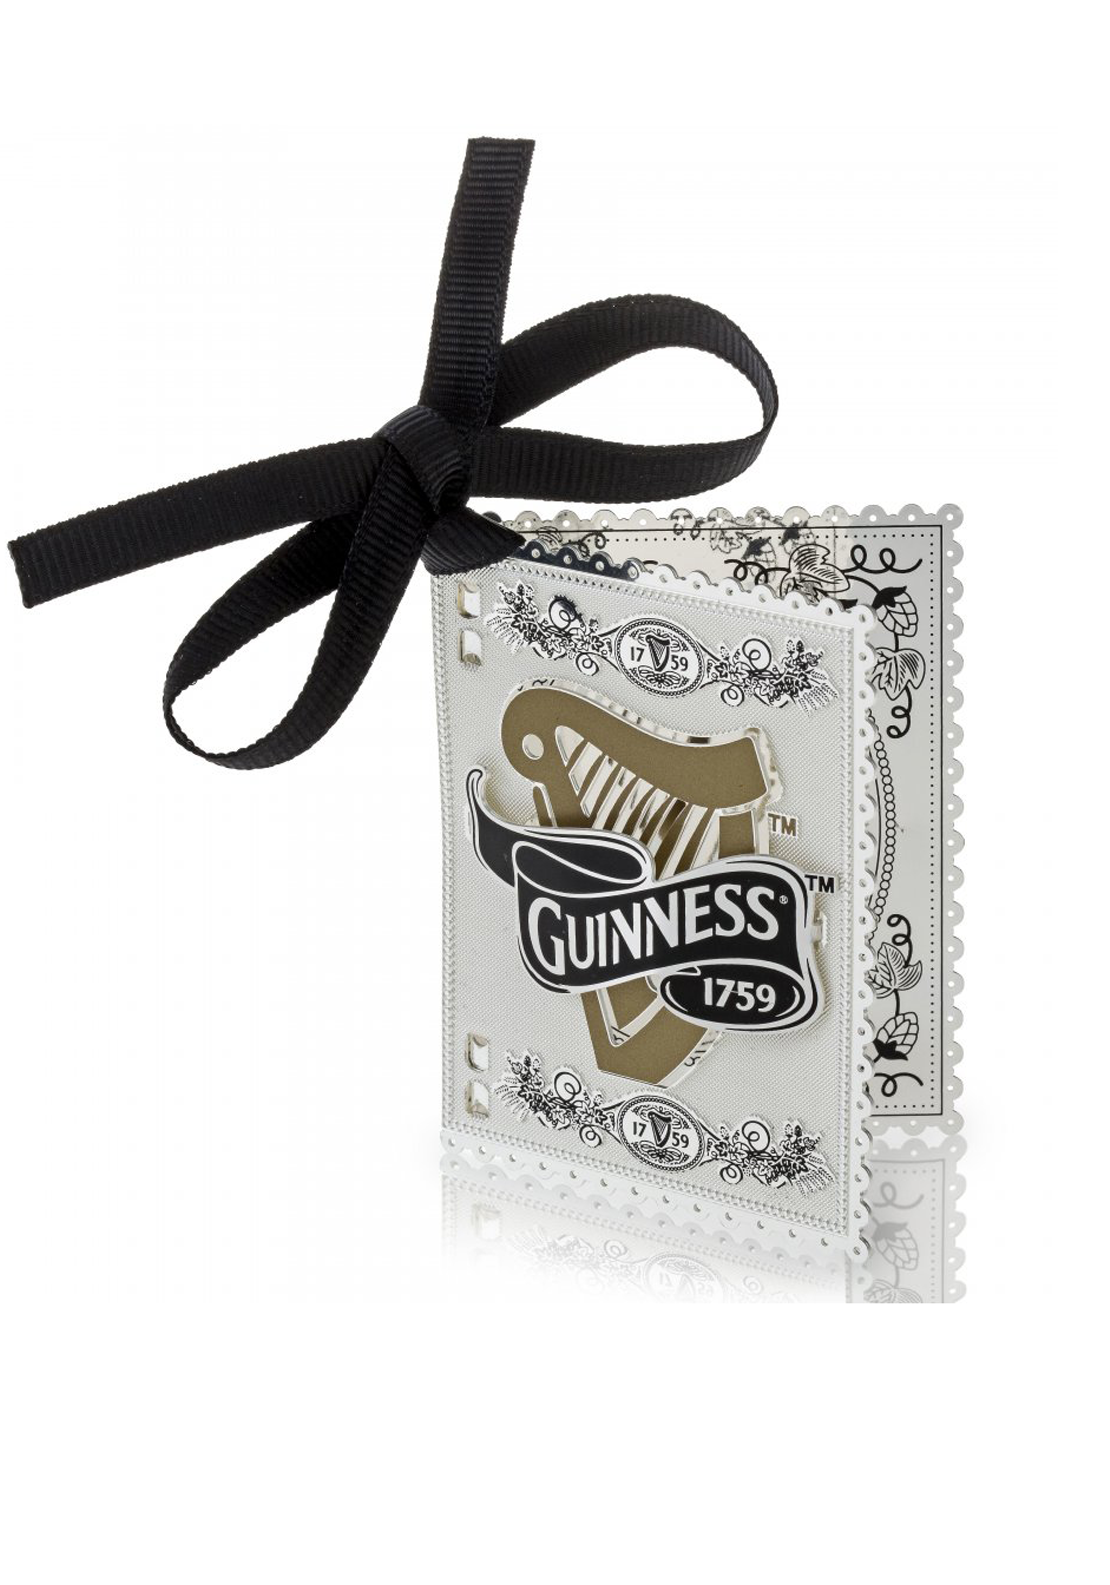 Guinness Newbridge Silverware Harp Book Decoration